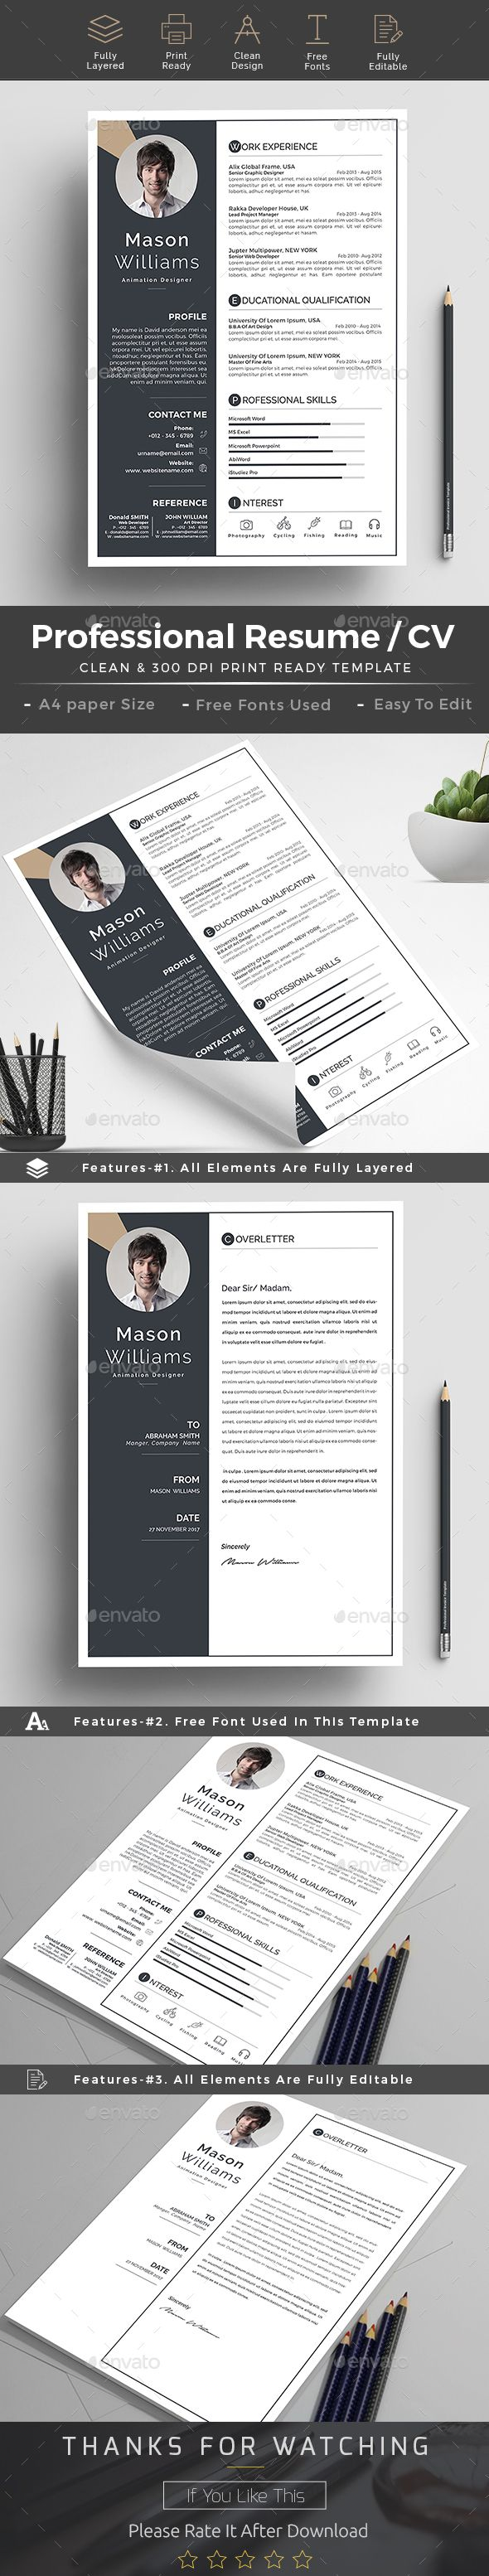 55 best resume images on Pinterest | Curriculum, Resume and Resume cv